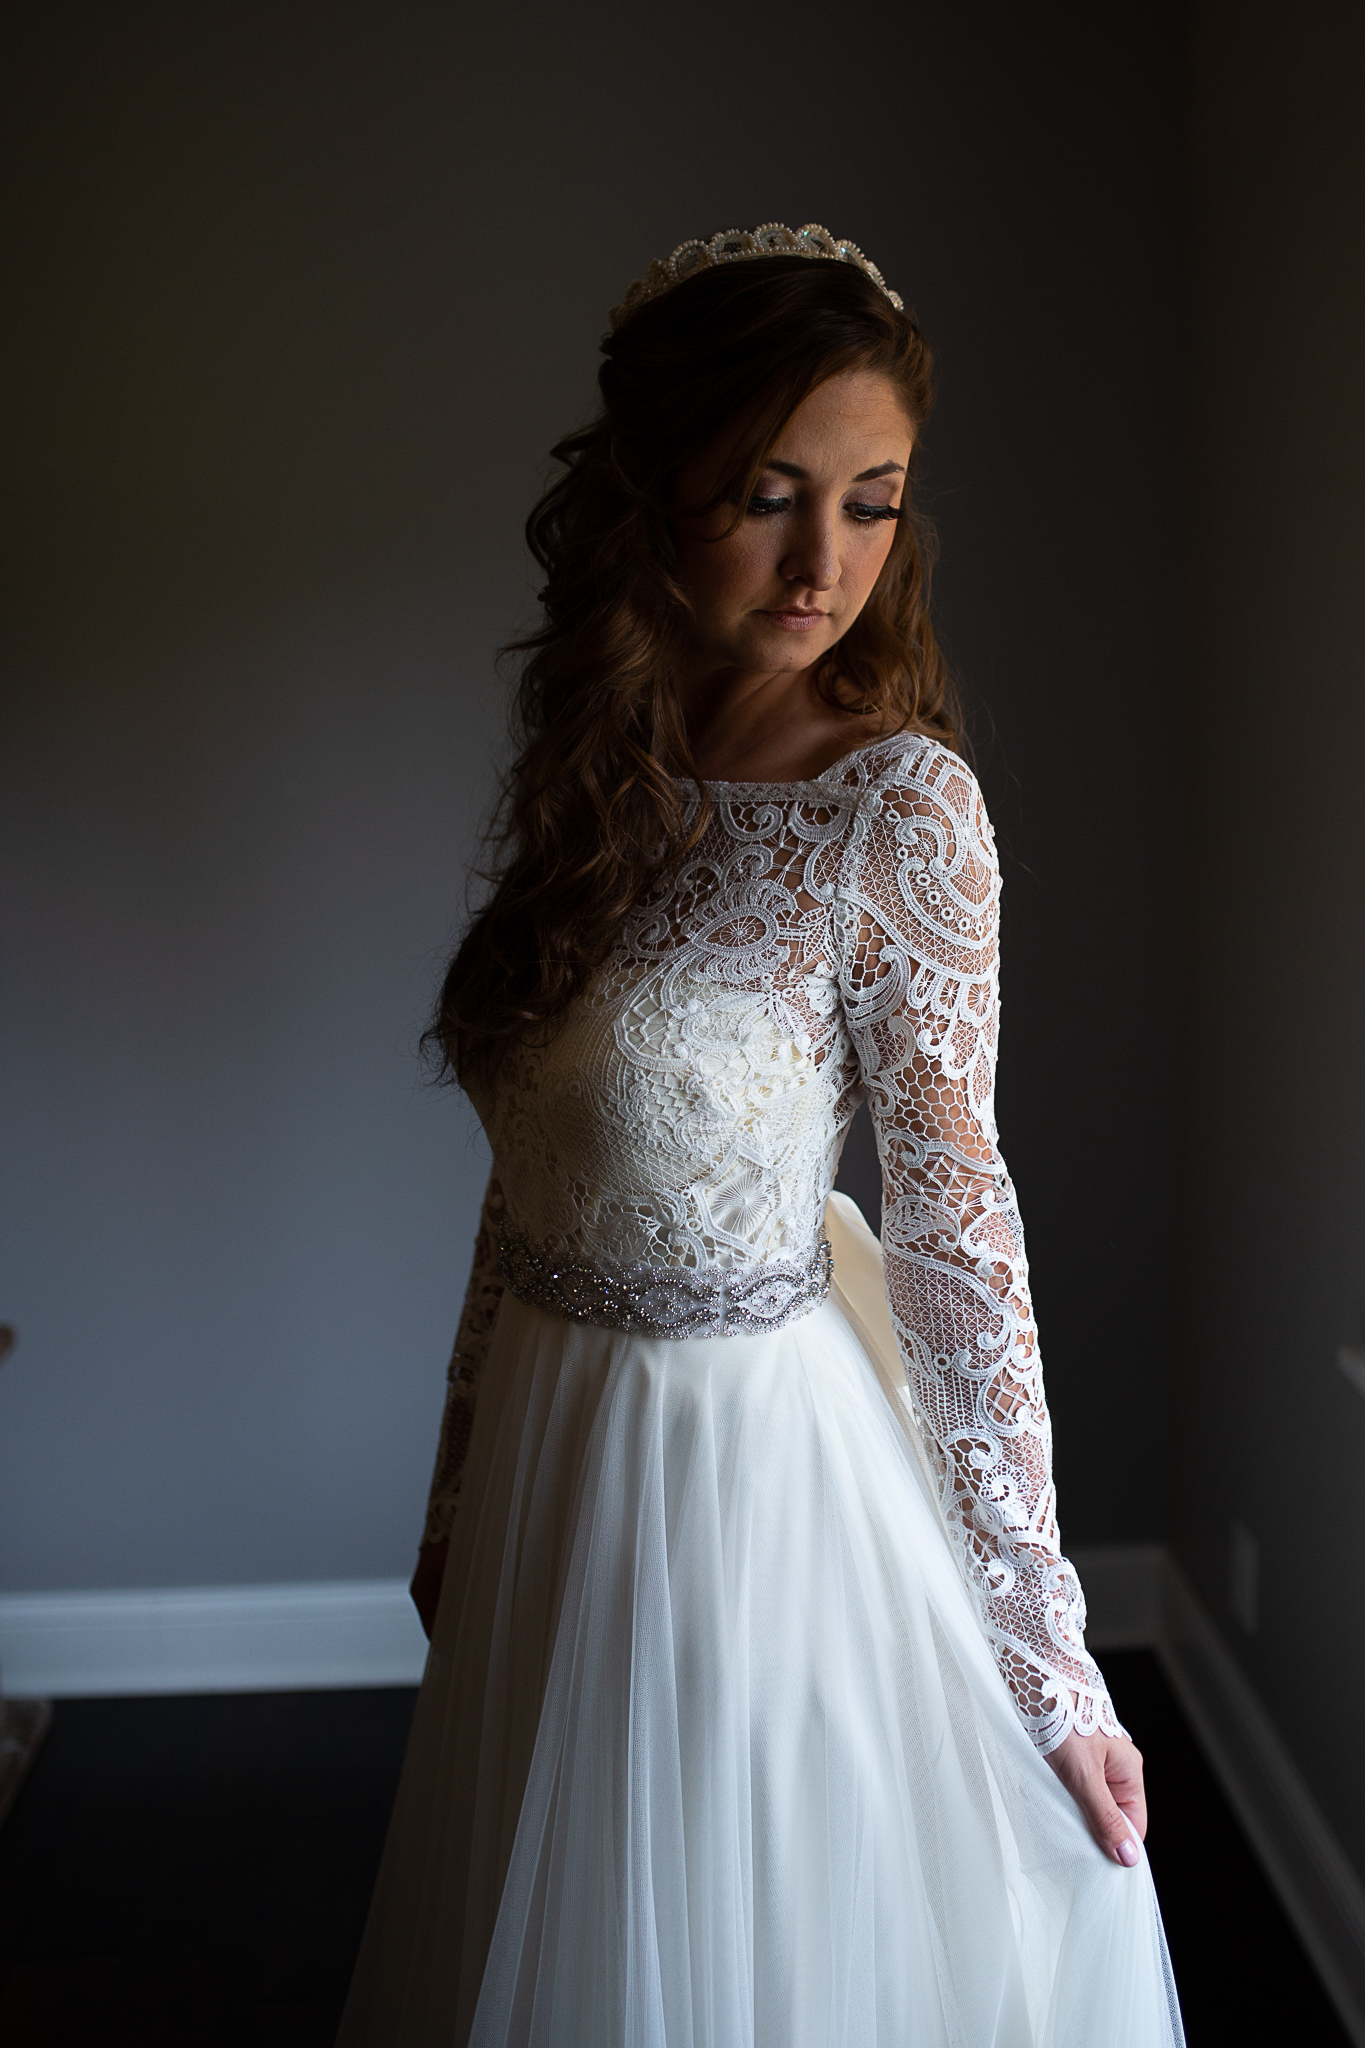 Bride posing after getting ready